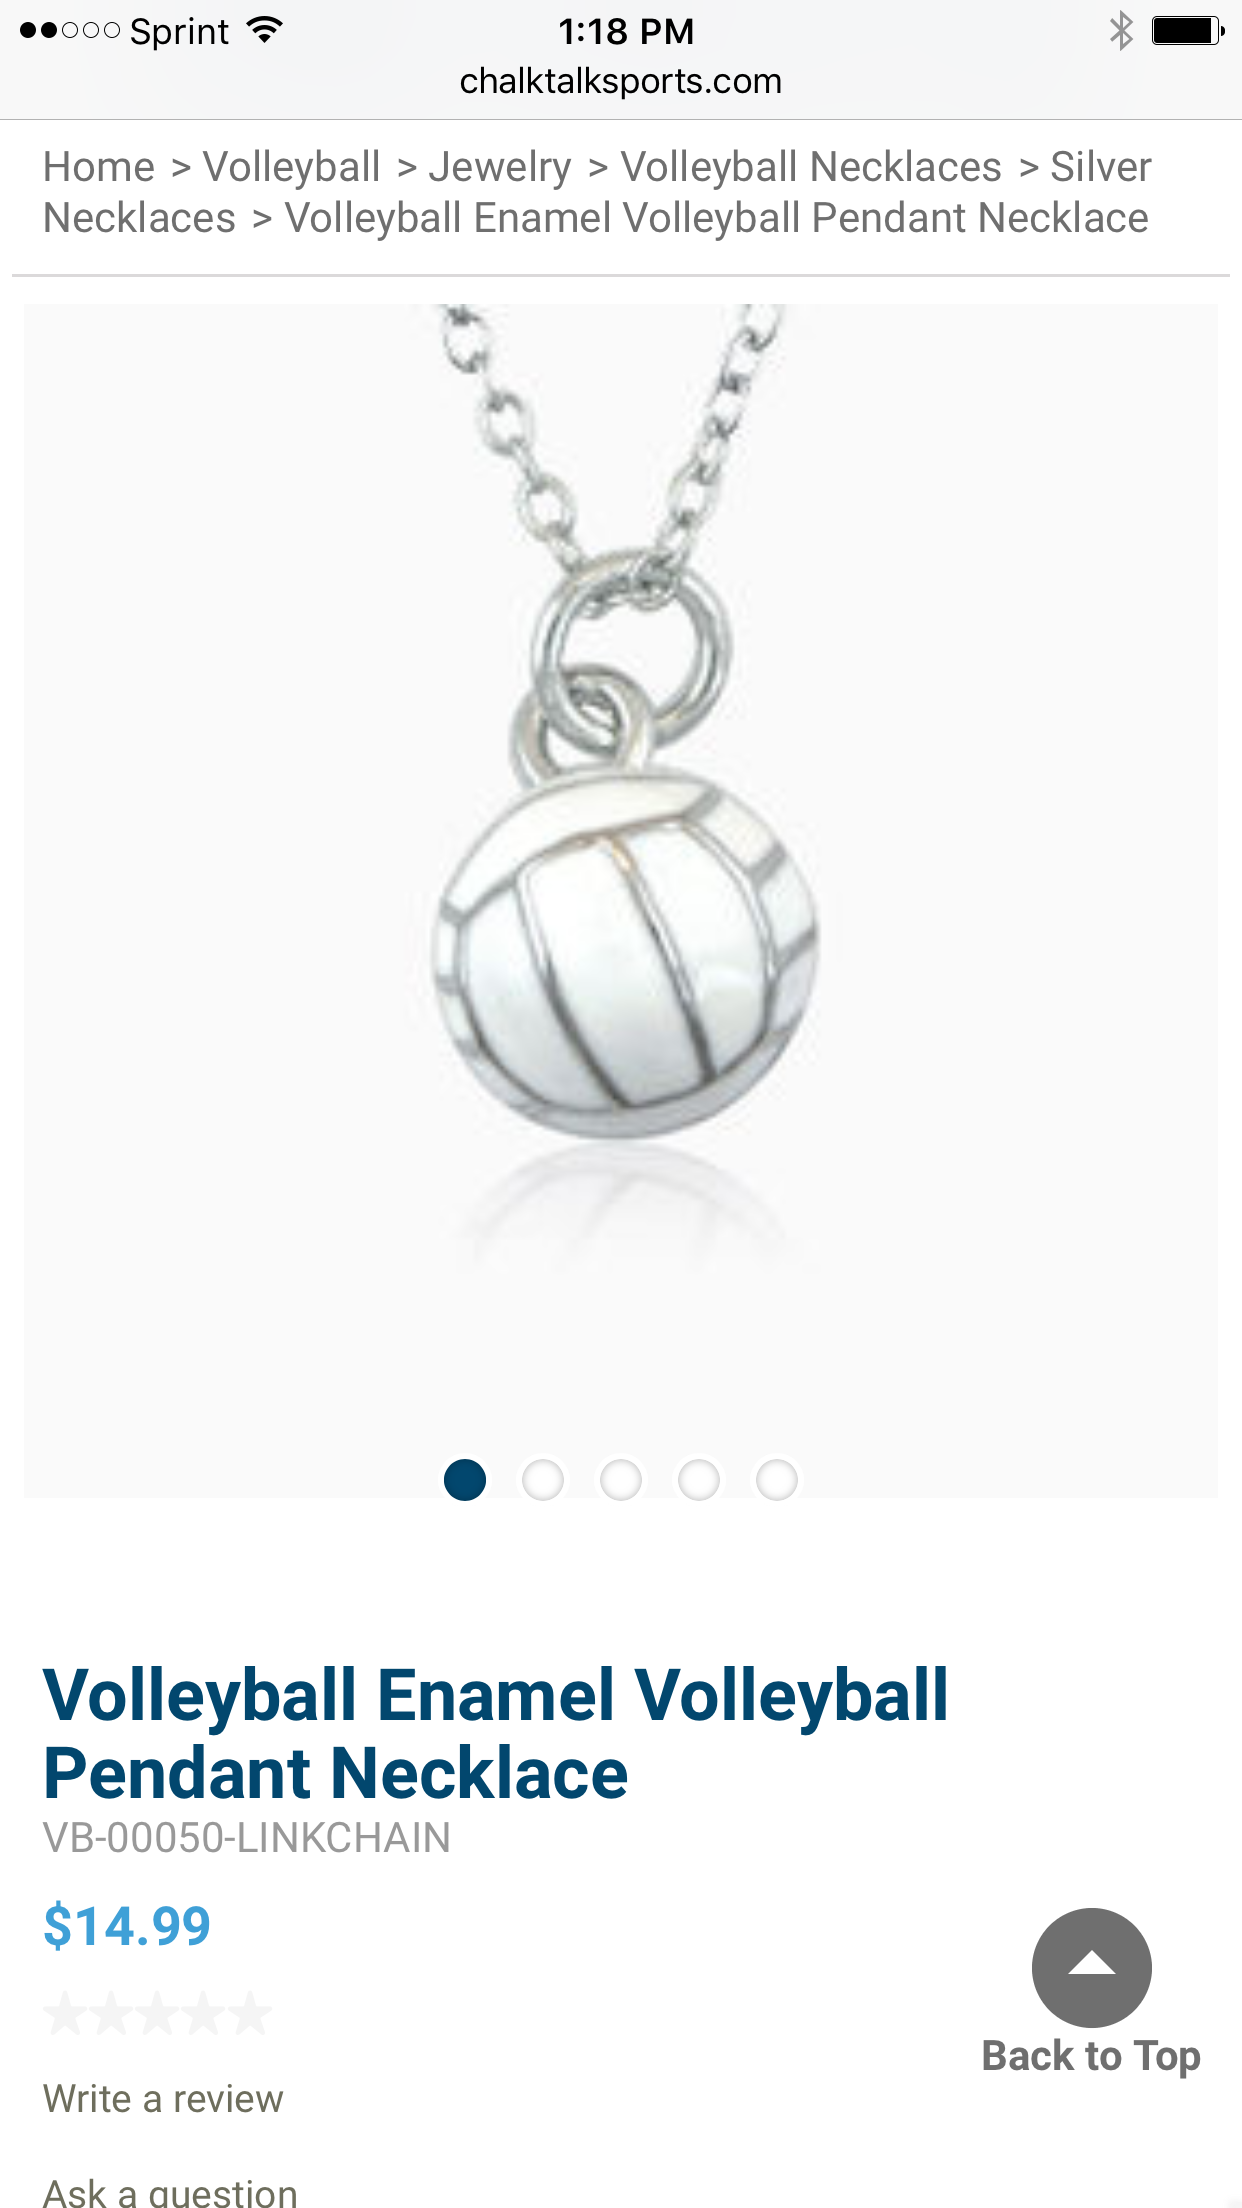 Pin By Jade Jones On Wish List Volleyball Necklace Volleyball Jewelry Pendant Necklace